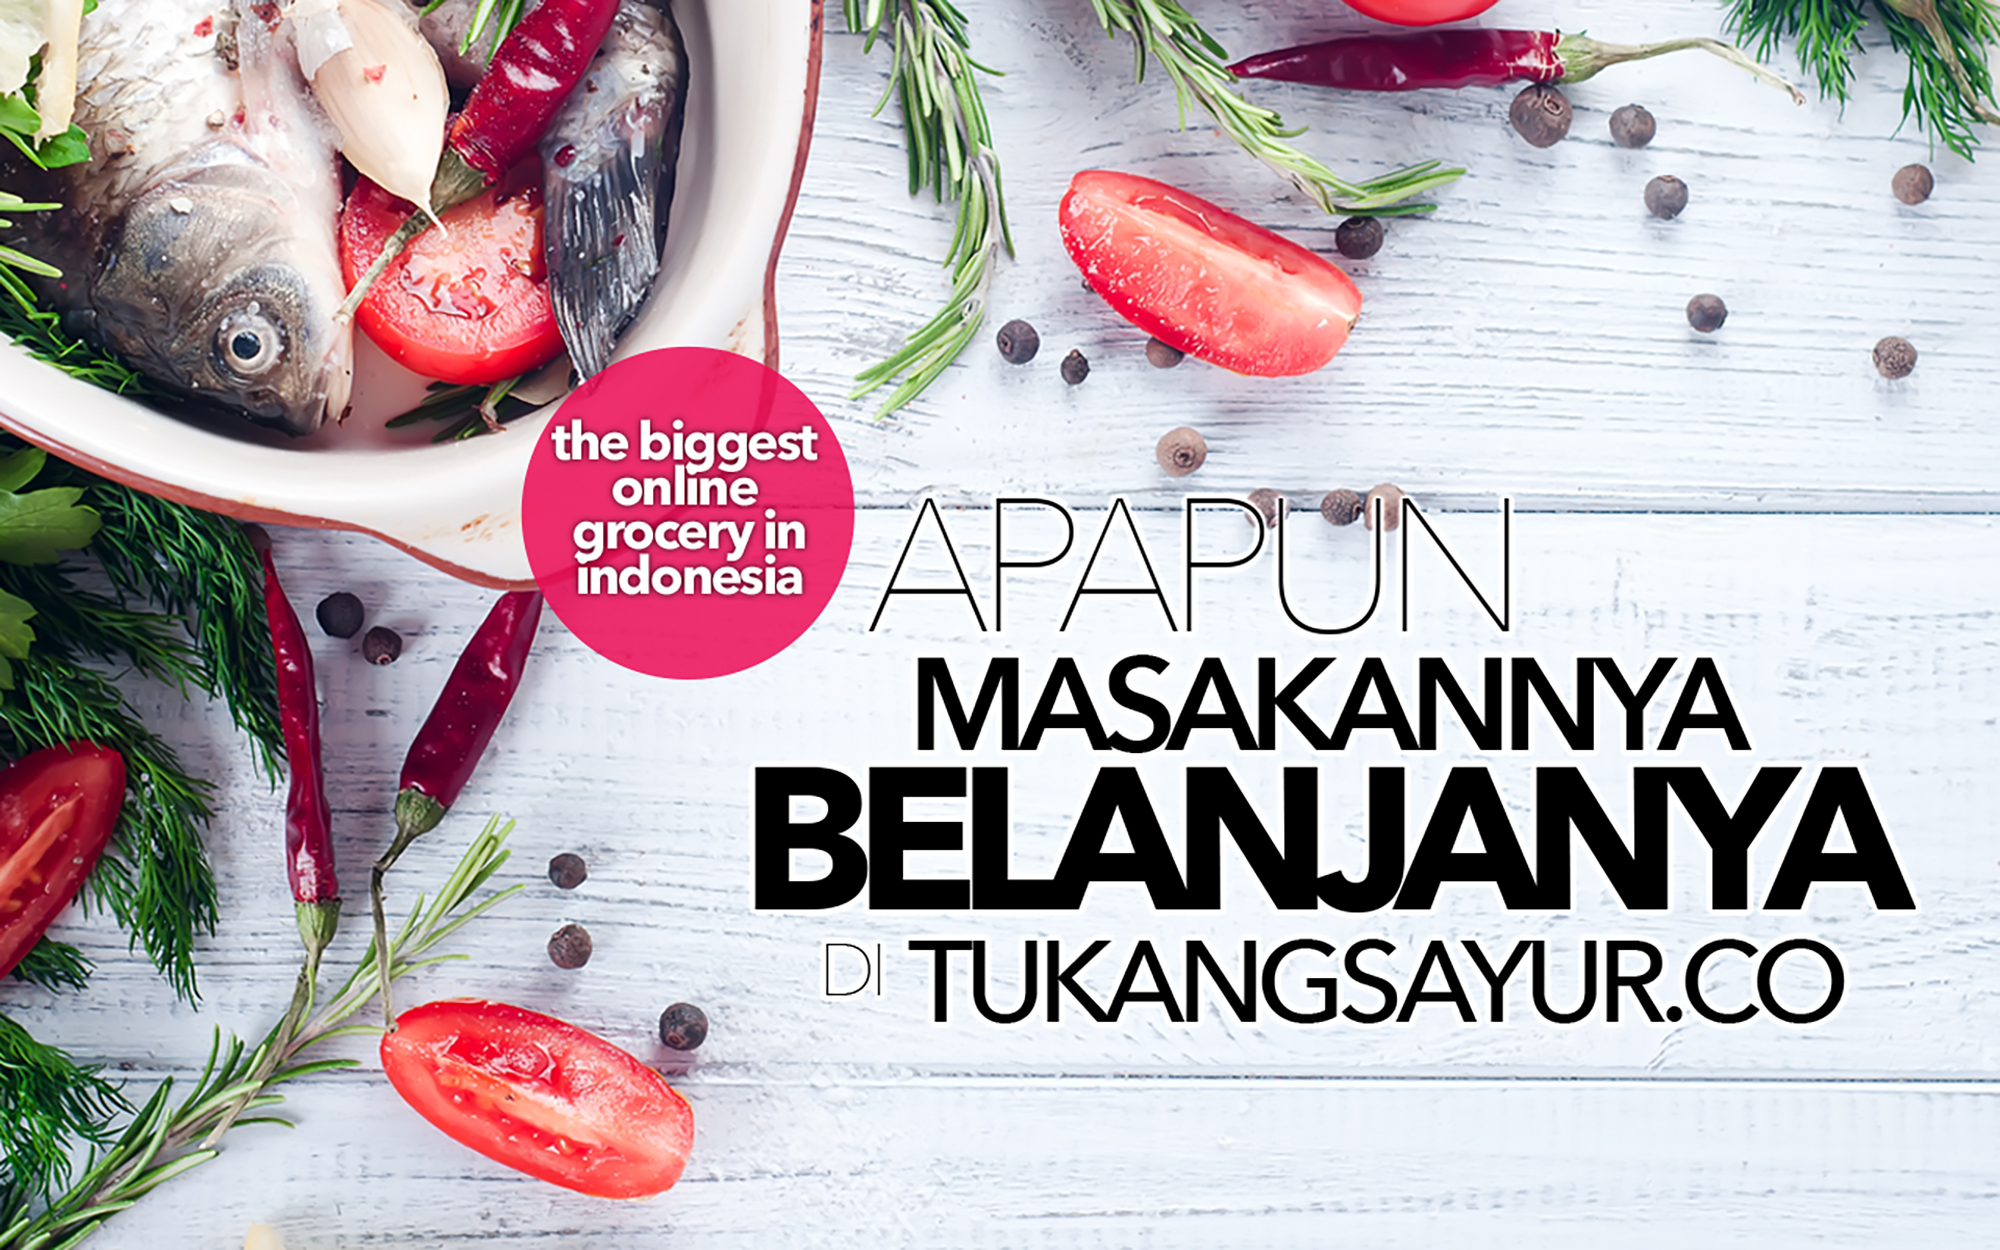 Tukangsayur.co - groceries online